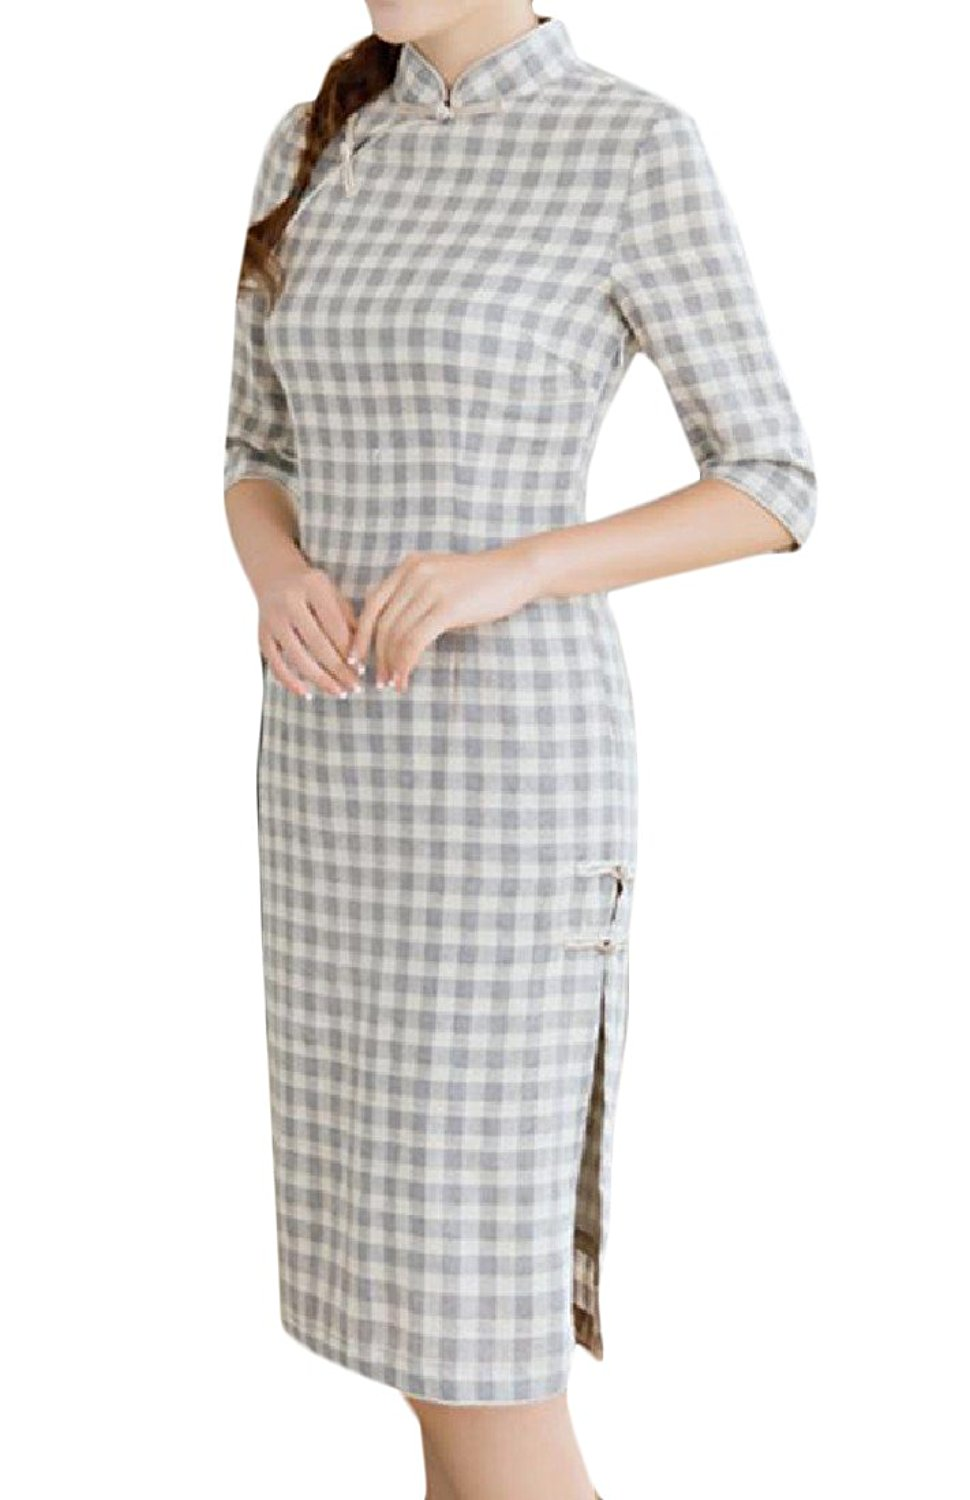 GodeyesWomen Godeyes Womens Plaid Cut Out Linen Buckle Decorated Chinese Prom Dress